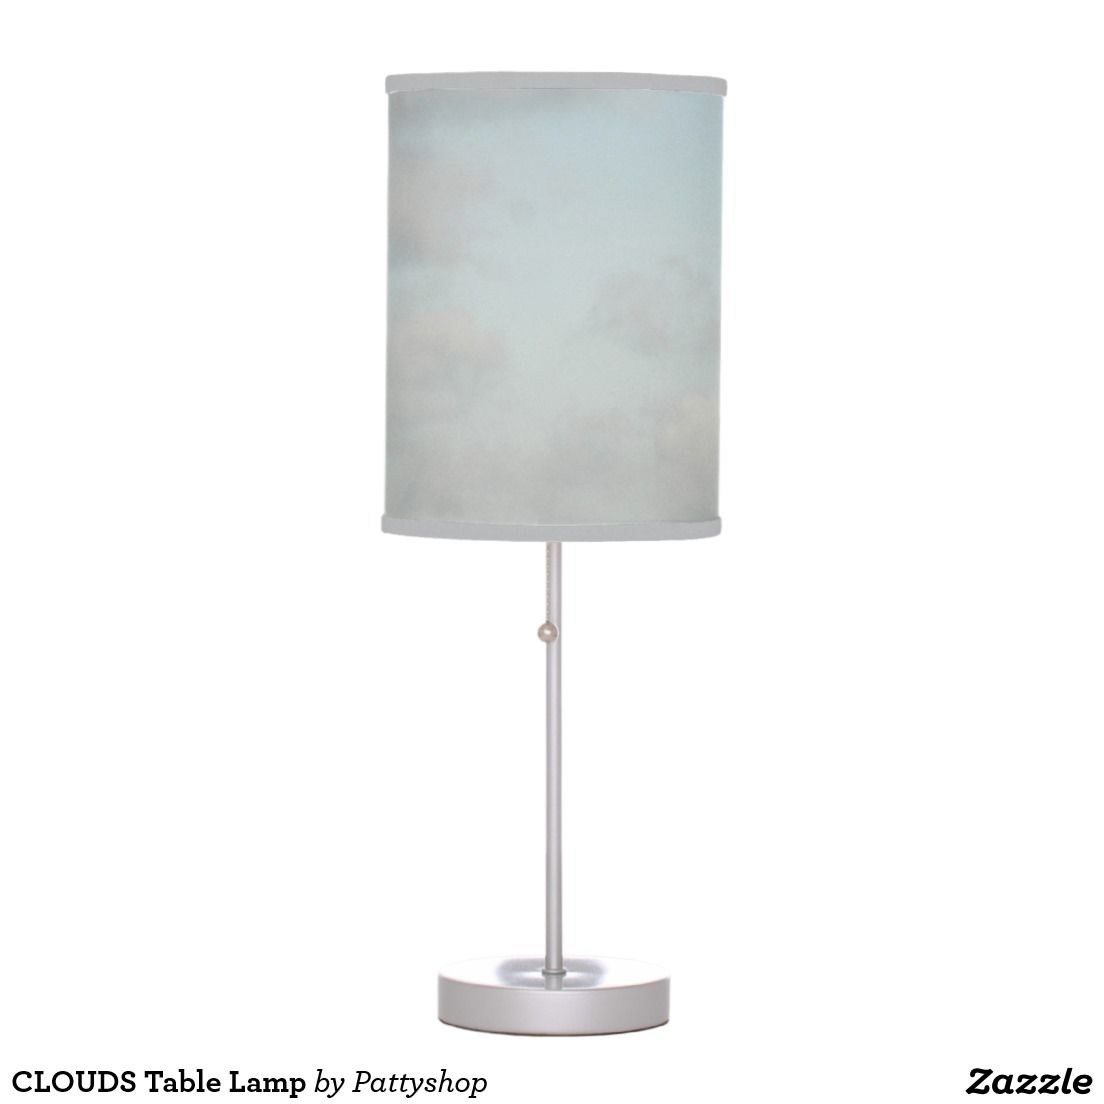 CLOUDS Table Lamp